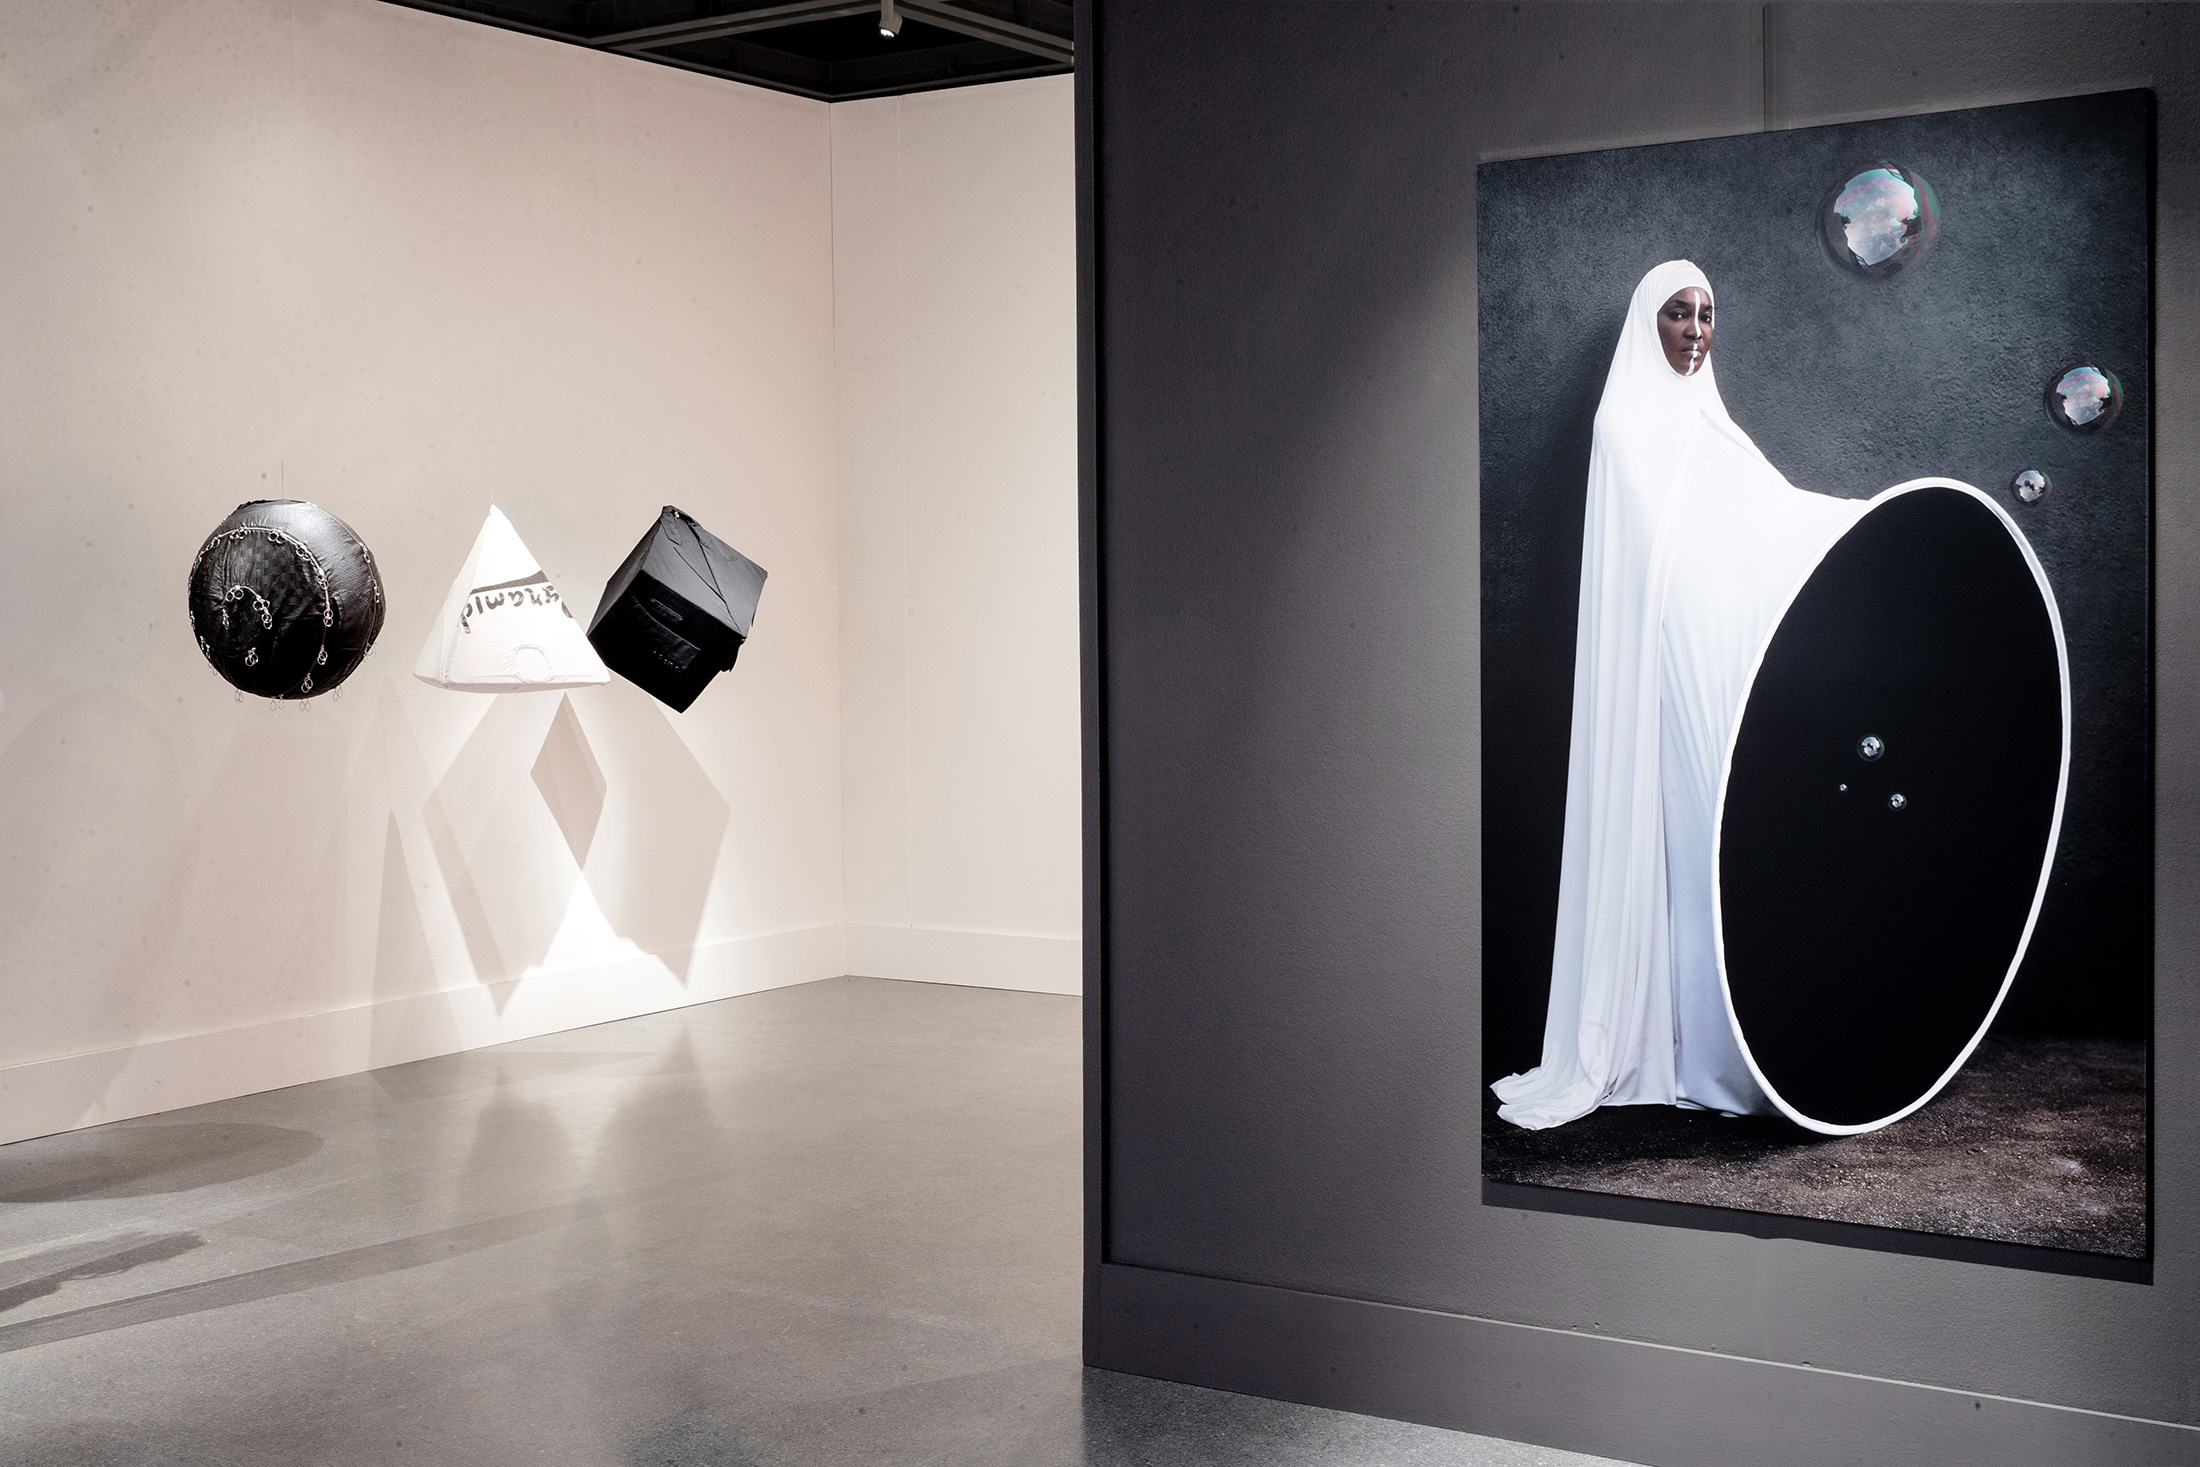 Installation view, New Orleans Museum of Art Anrealage & Maimouna Guerresi (Photo: Josh Brasted)